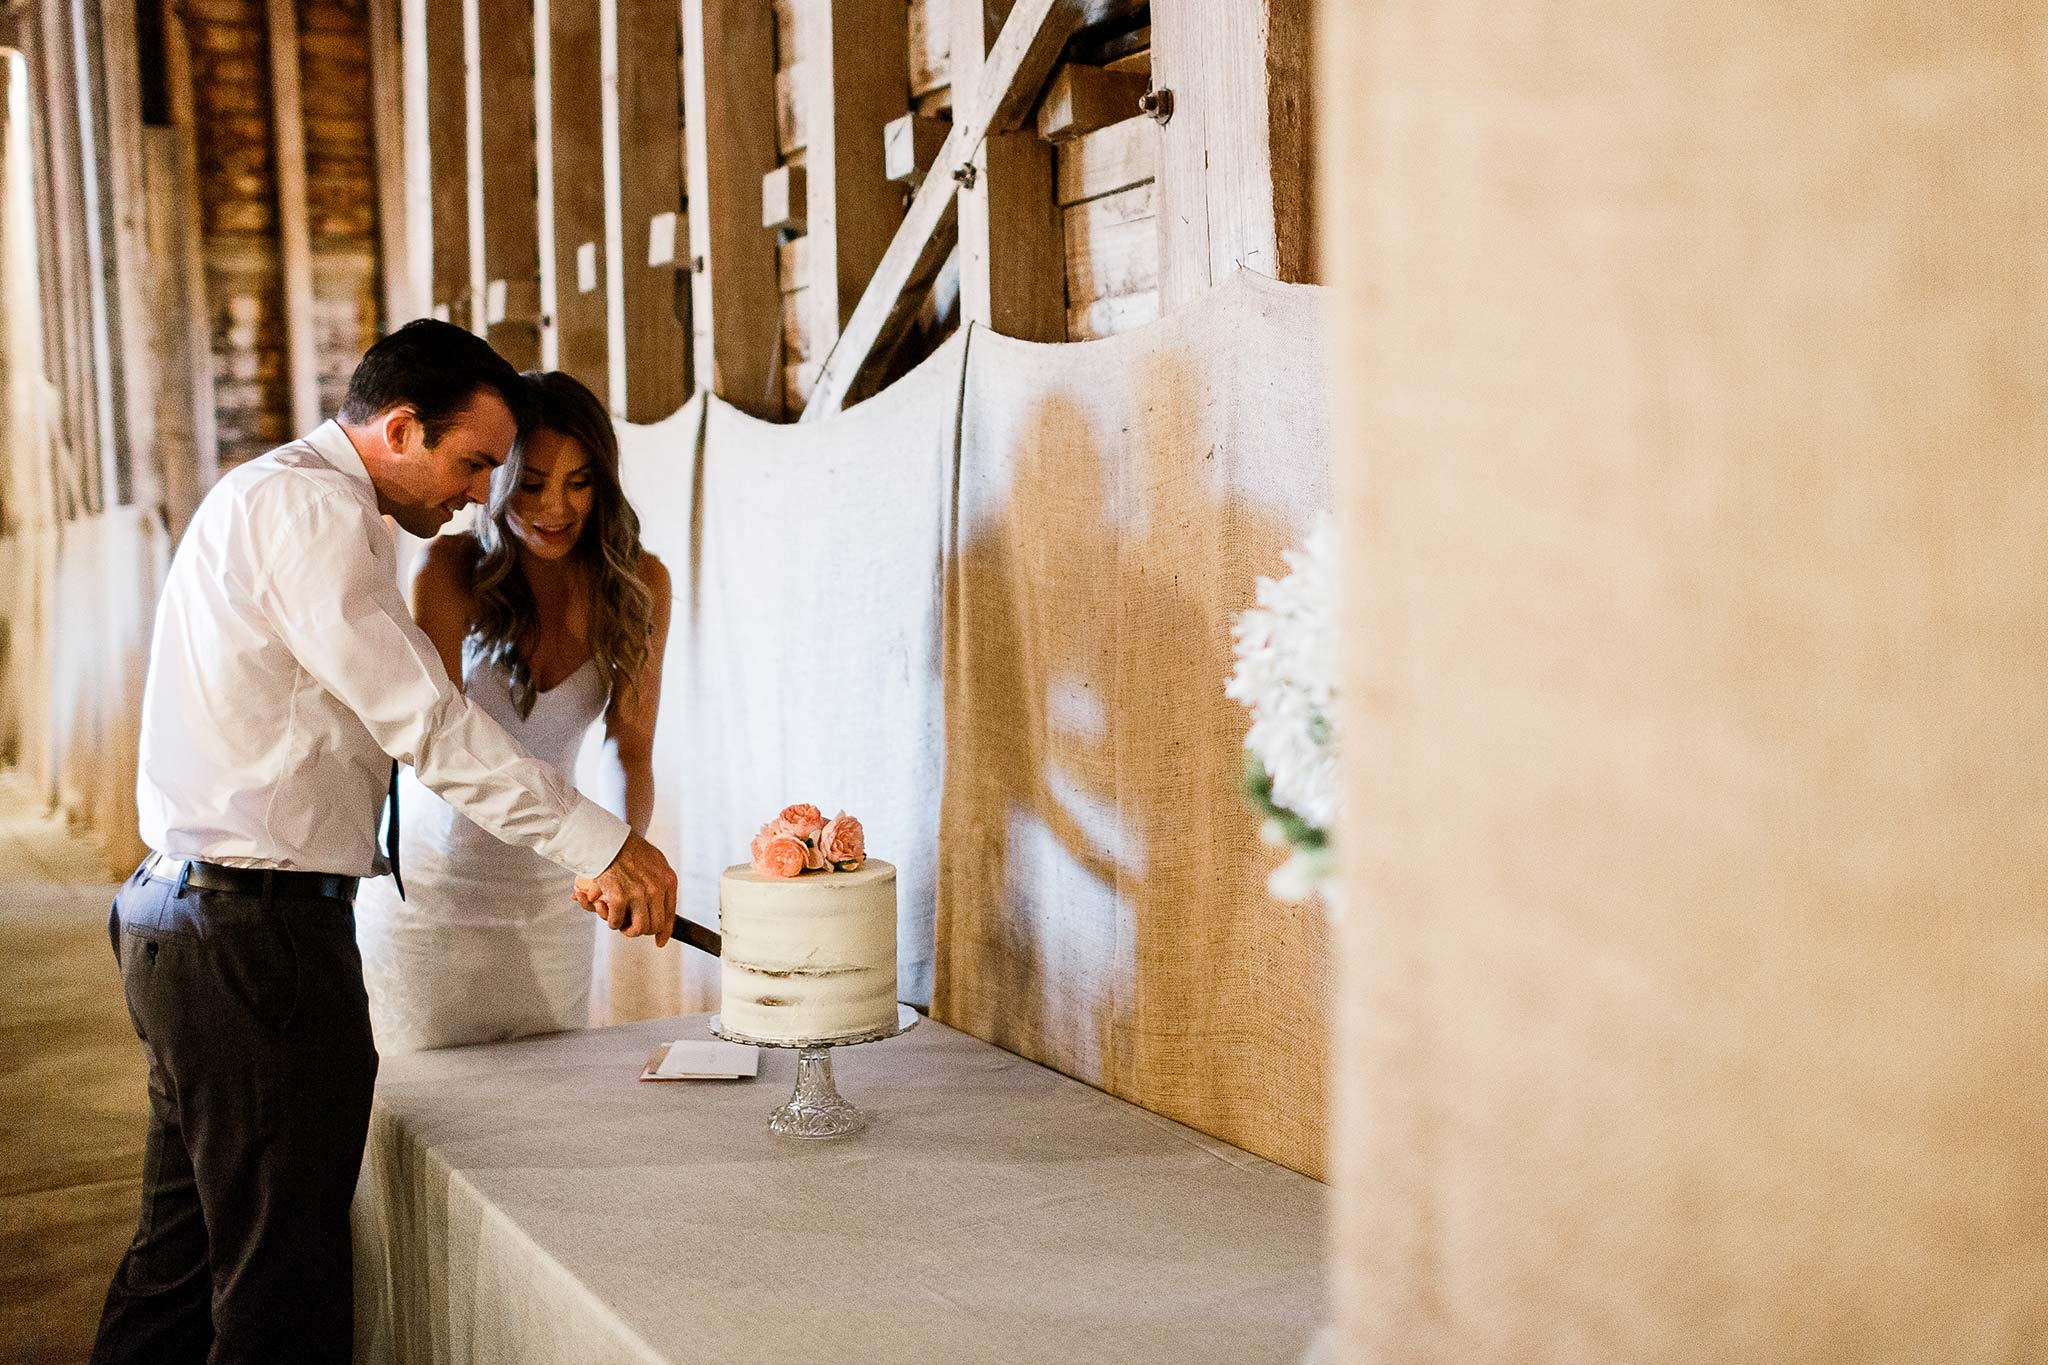 Launceston-Brickendon-barn-Wedding-Photographer-reception-cake-cutting